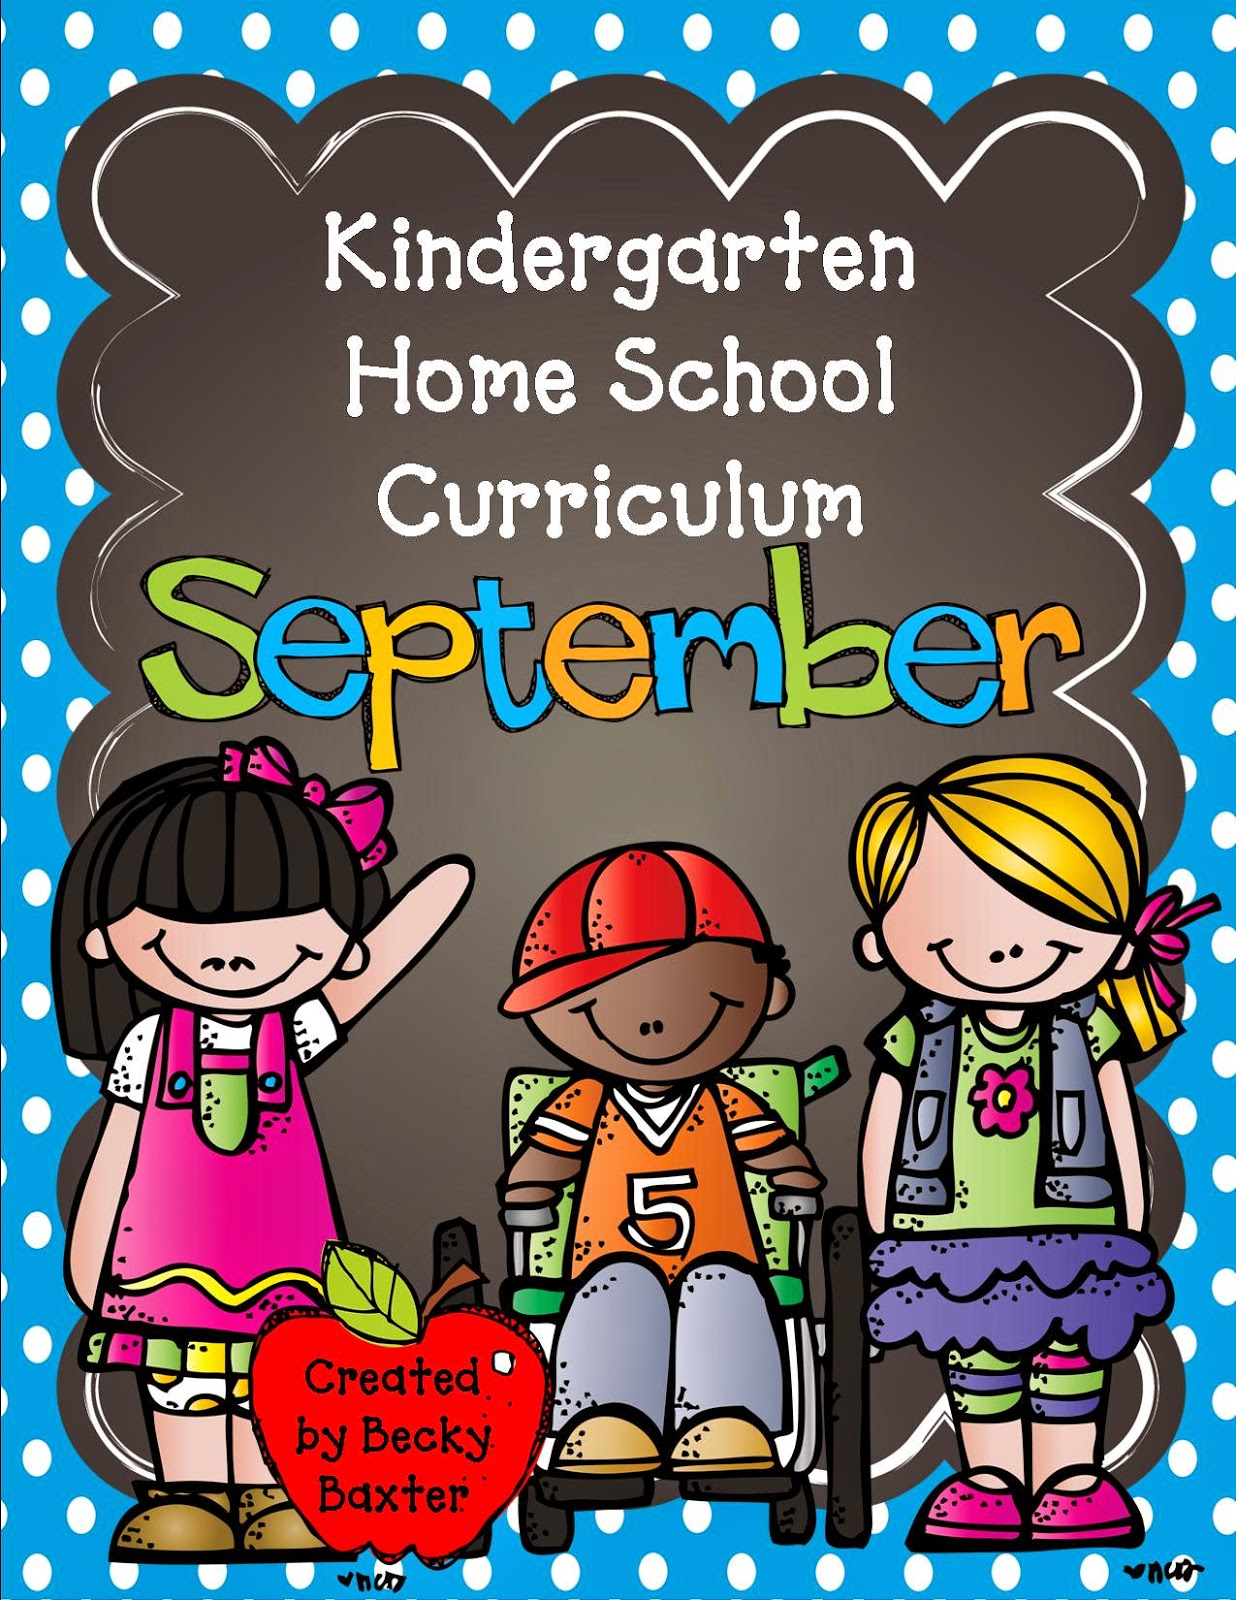 http://www.teacherspayteachers.com/Product/TLL-Kindergarten-Home-School-Curriculum-September-1348940